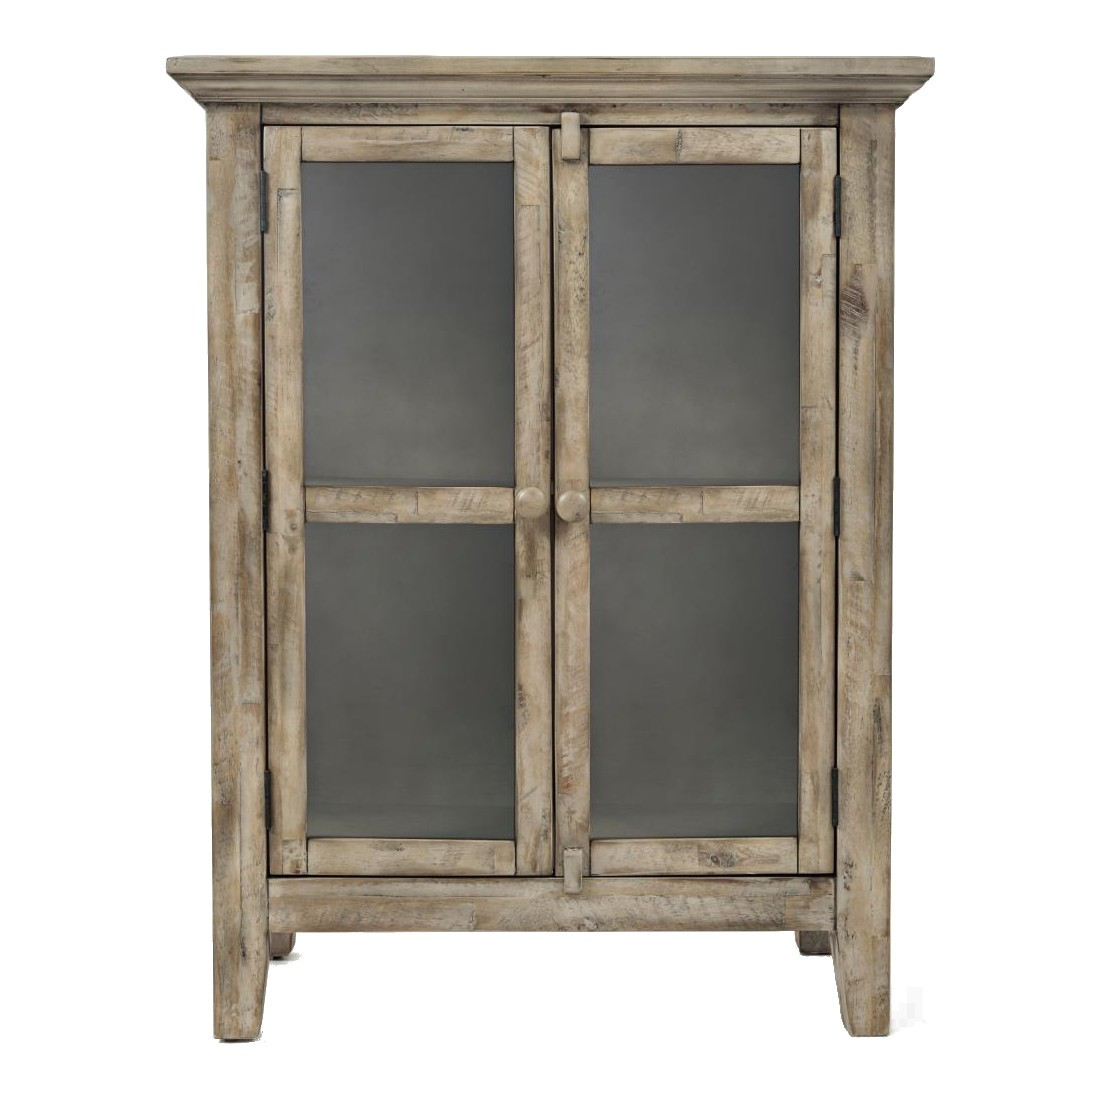 cabinet door ellington rosendale home trisha accent windham glossy threshold mills phoebe altra pulaski ameriwood white andover whitesburg garrett yearwood double target table